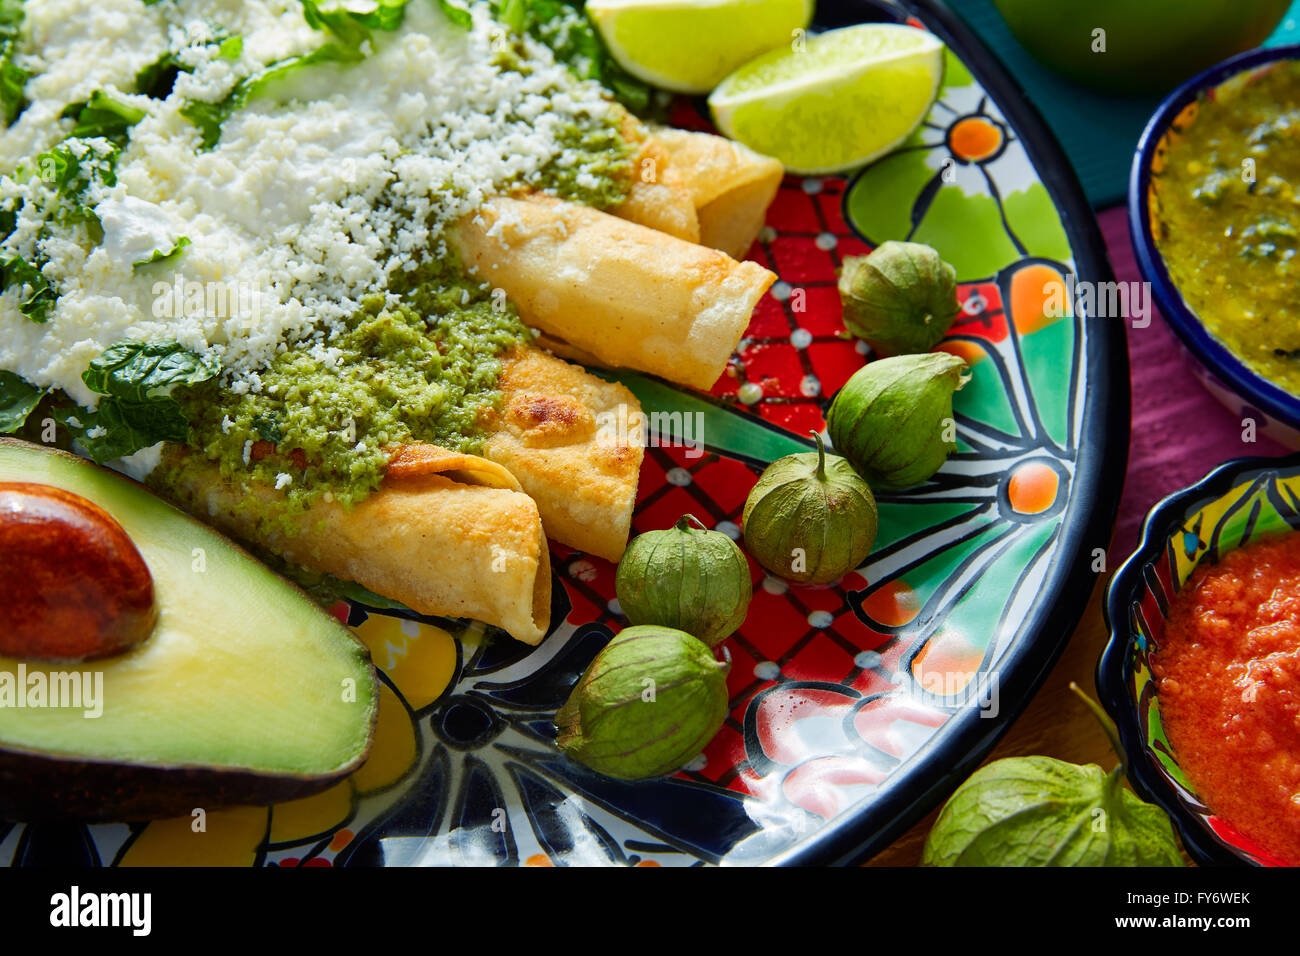 Green enchiladas Mexican food with guacamole and sauces on colorful table Stock Photo